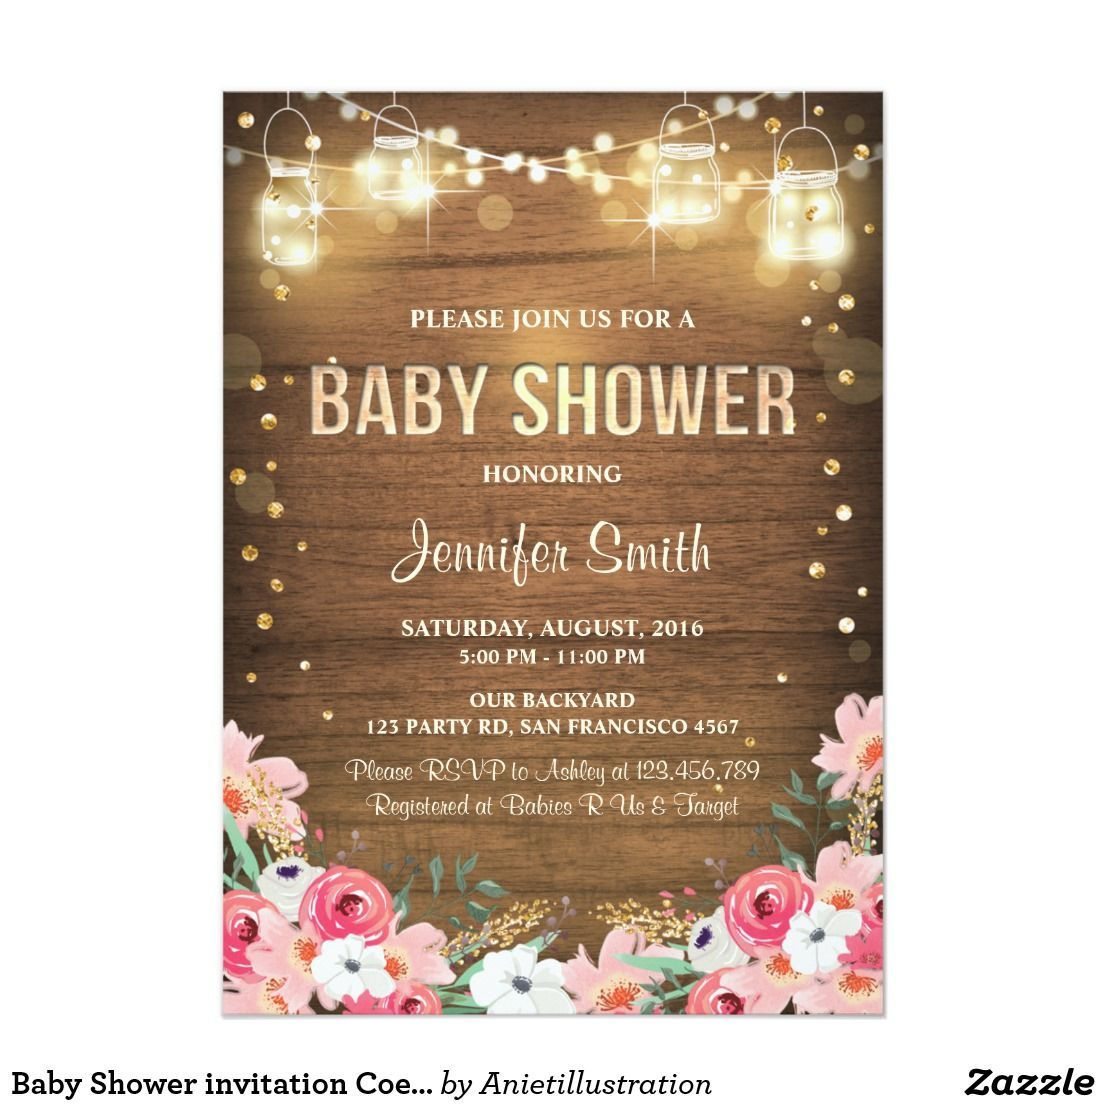 Shower invitation coed rustic floral garden baby shower invitation coed rustic floral garden filmwisefo Images